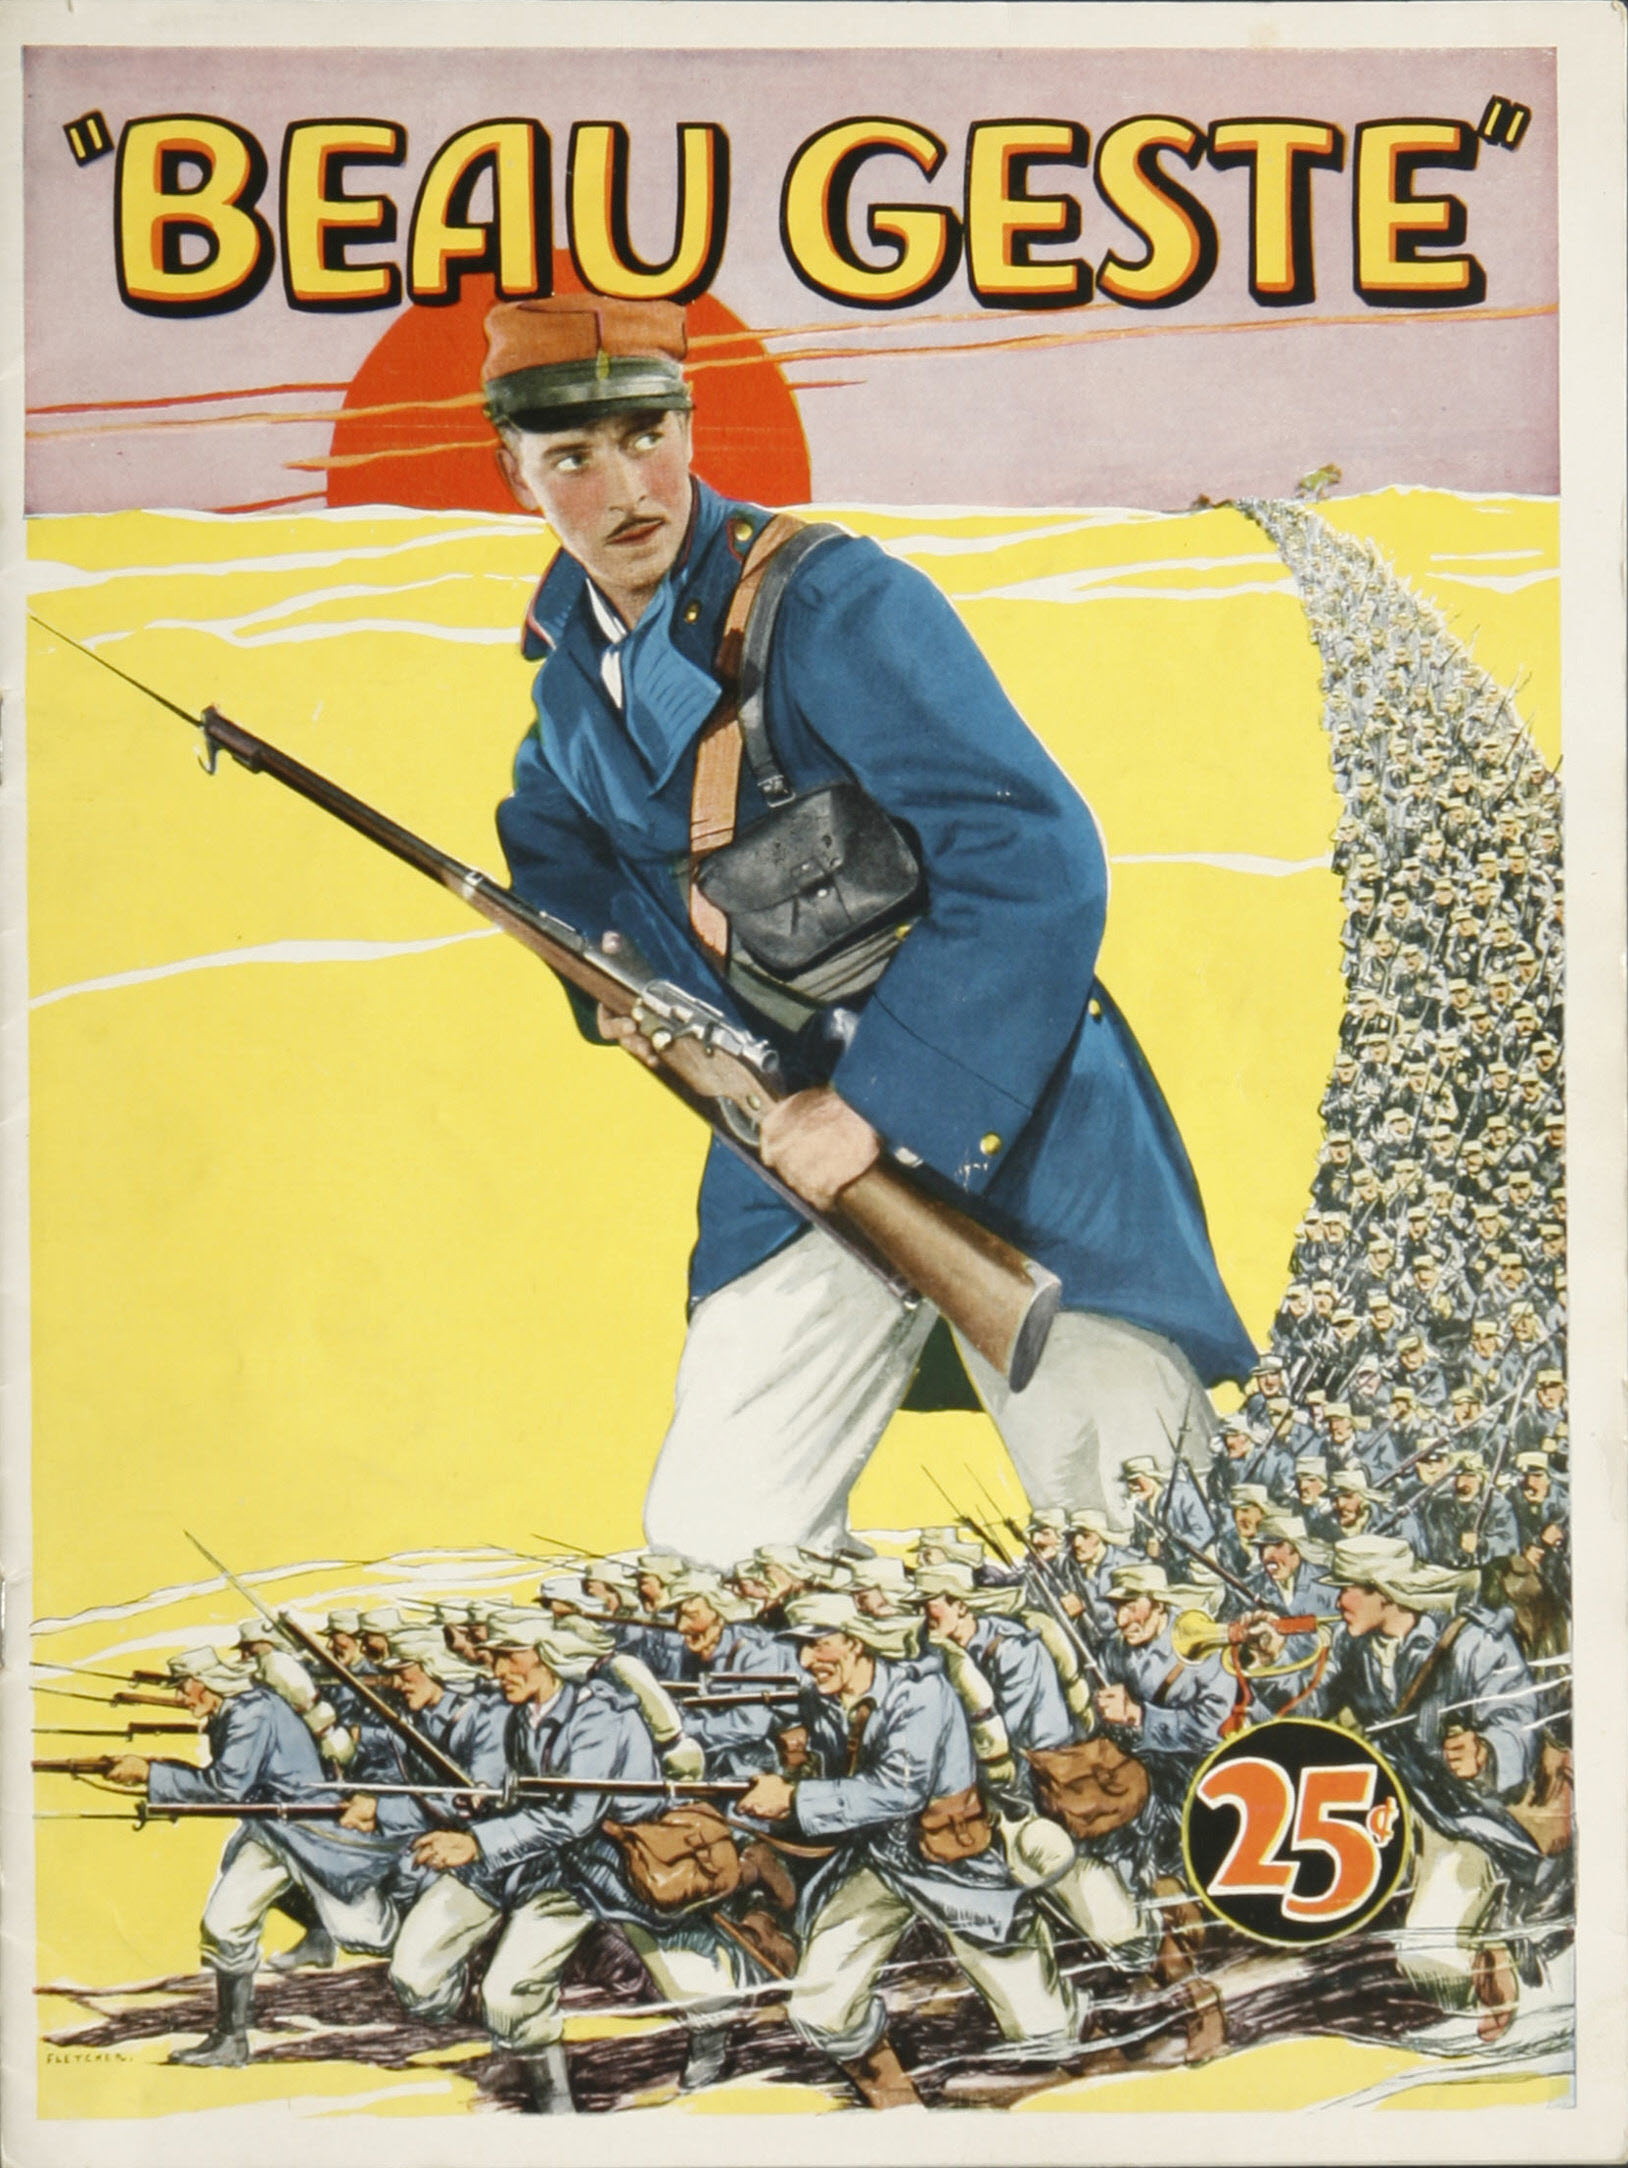 1926 movie program for Beau Geste shows a man in a French Foreign Legion uniform, holding a rifle, in a desert setting.